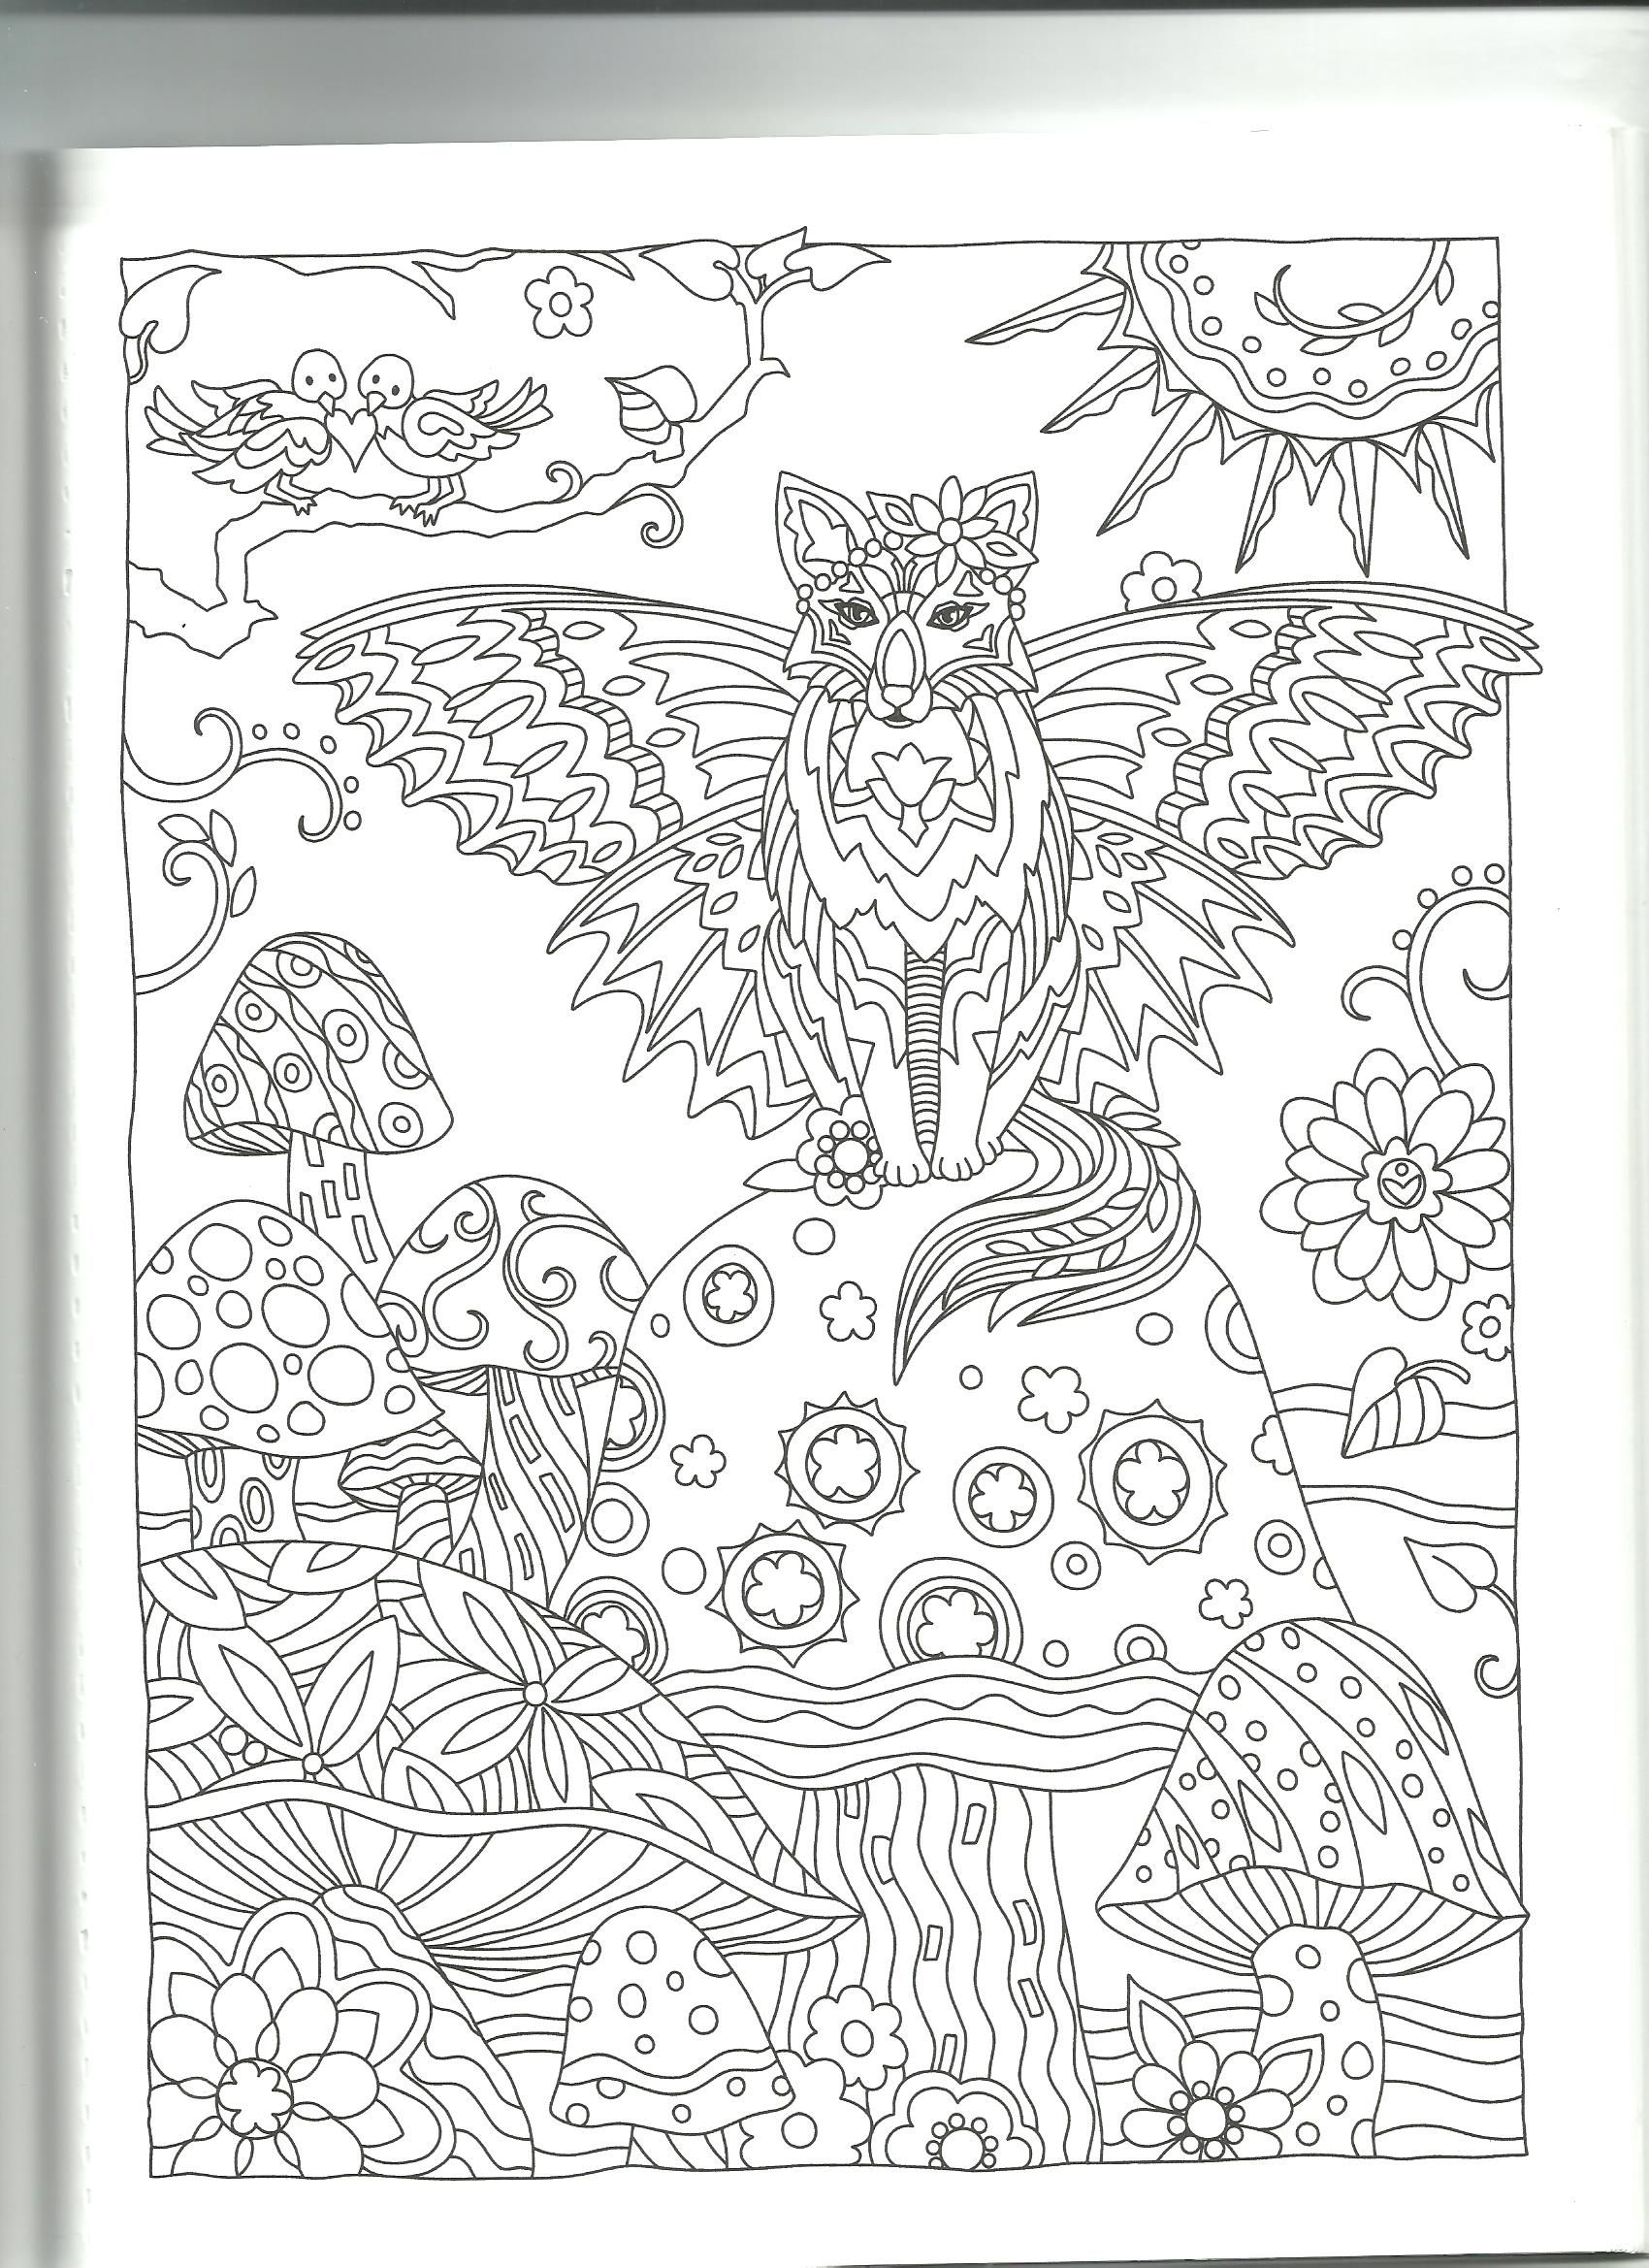 Pin By Biga On Coloring Cool Coloring Pages Coloring Books Coloring Pages